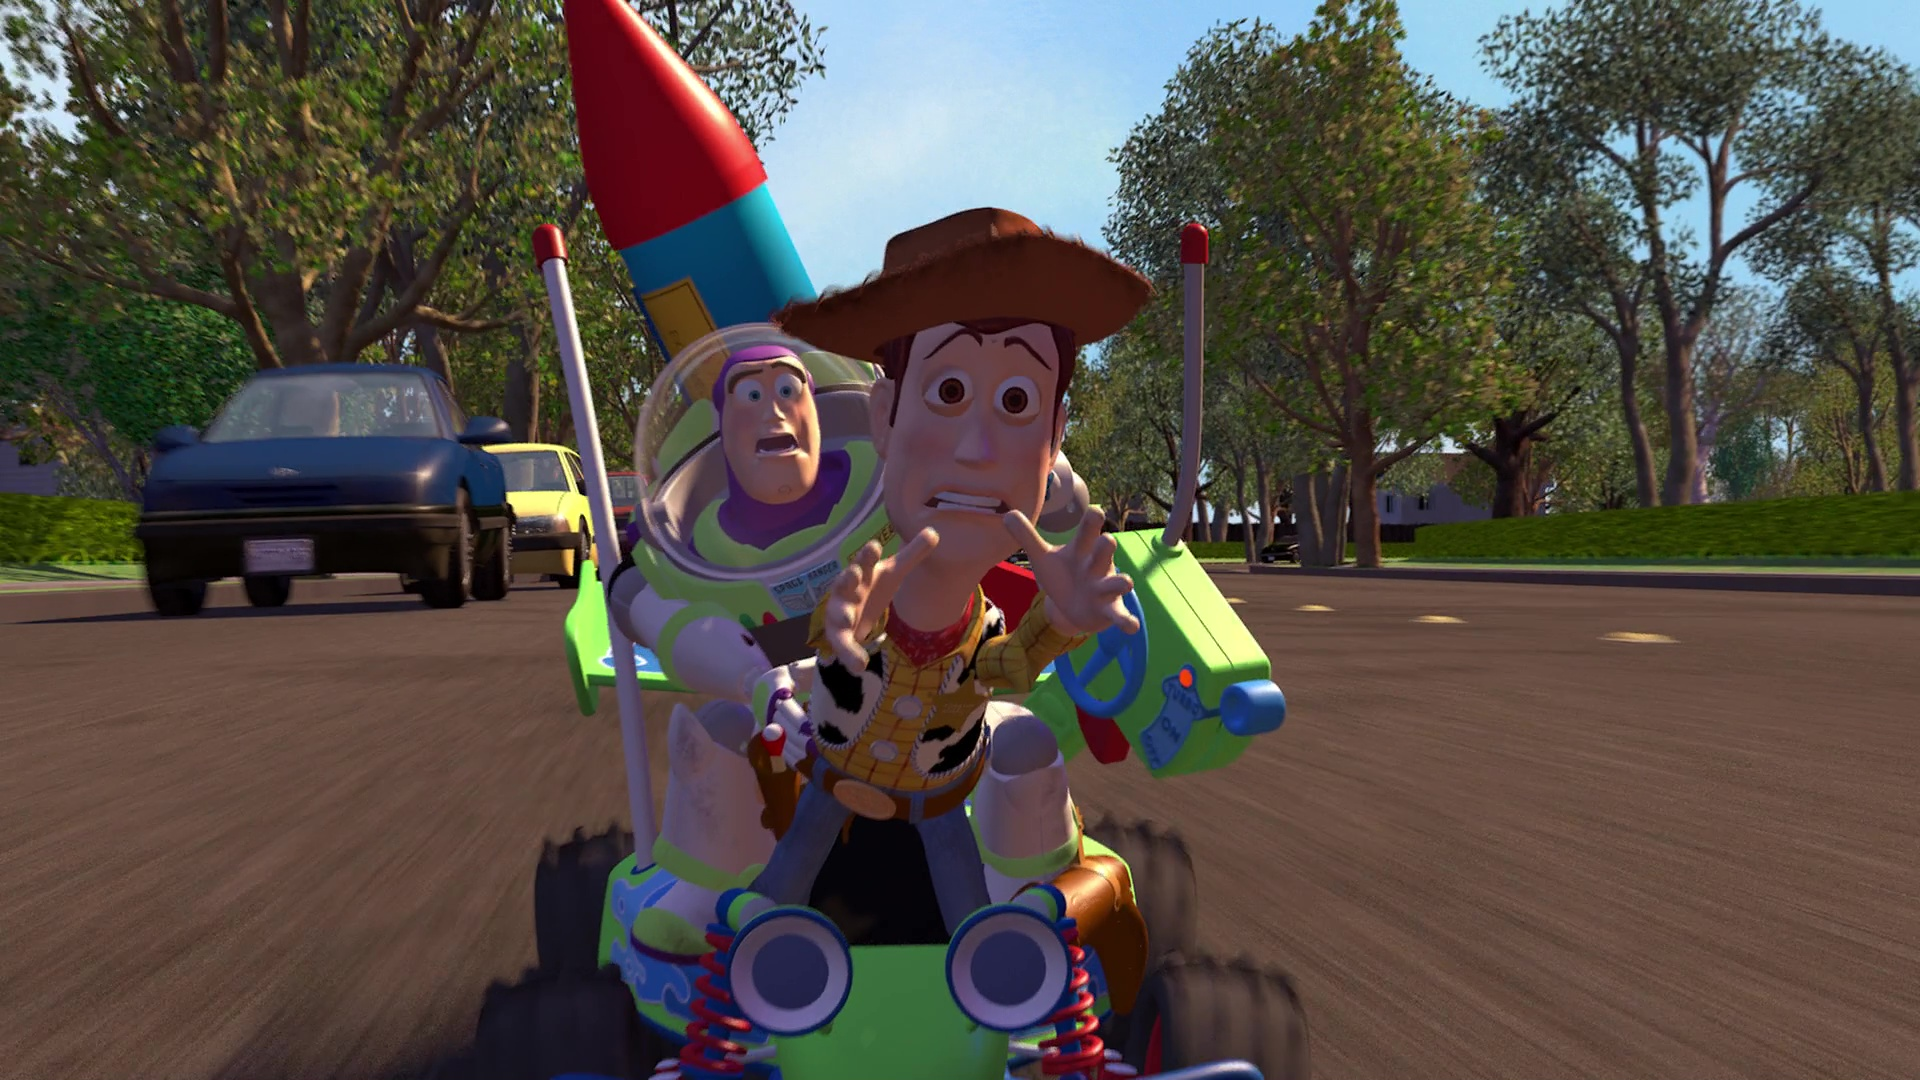 File:Buzz-lightyear-woody-rc-toy-story.jpg